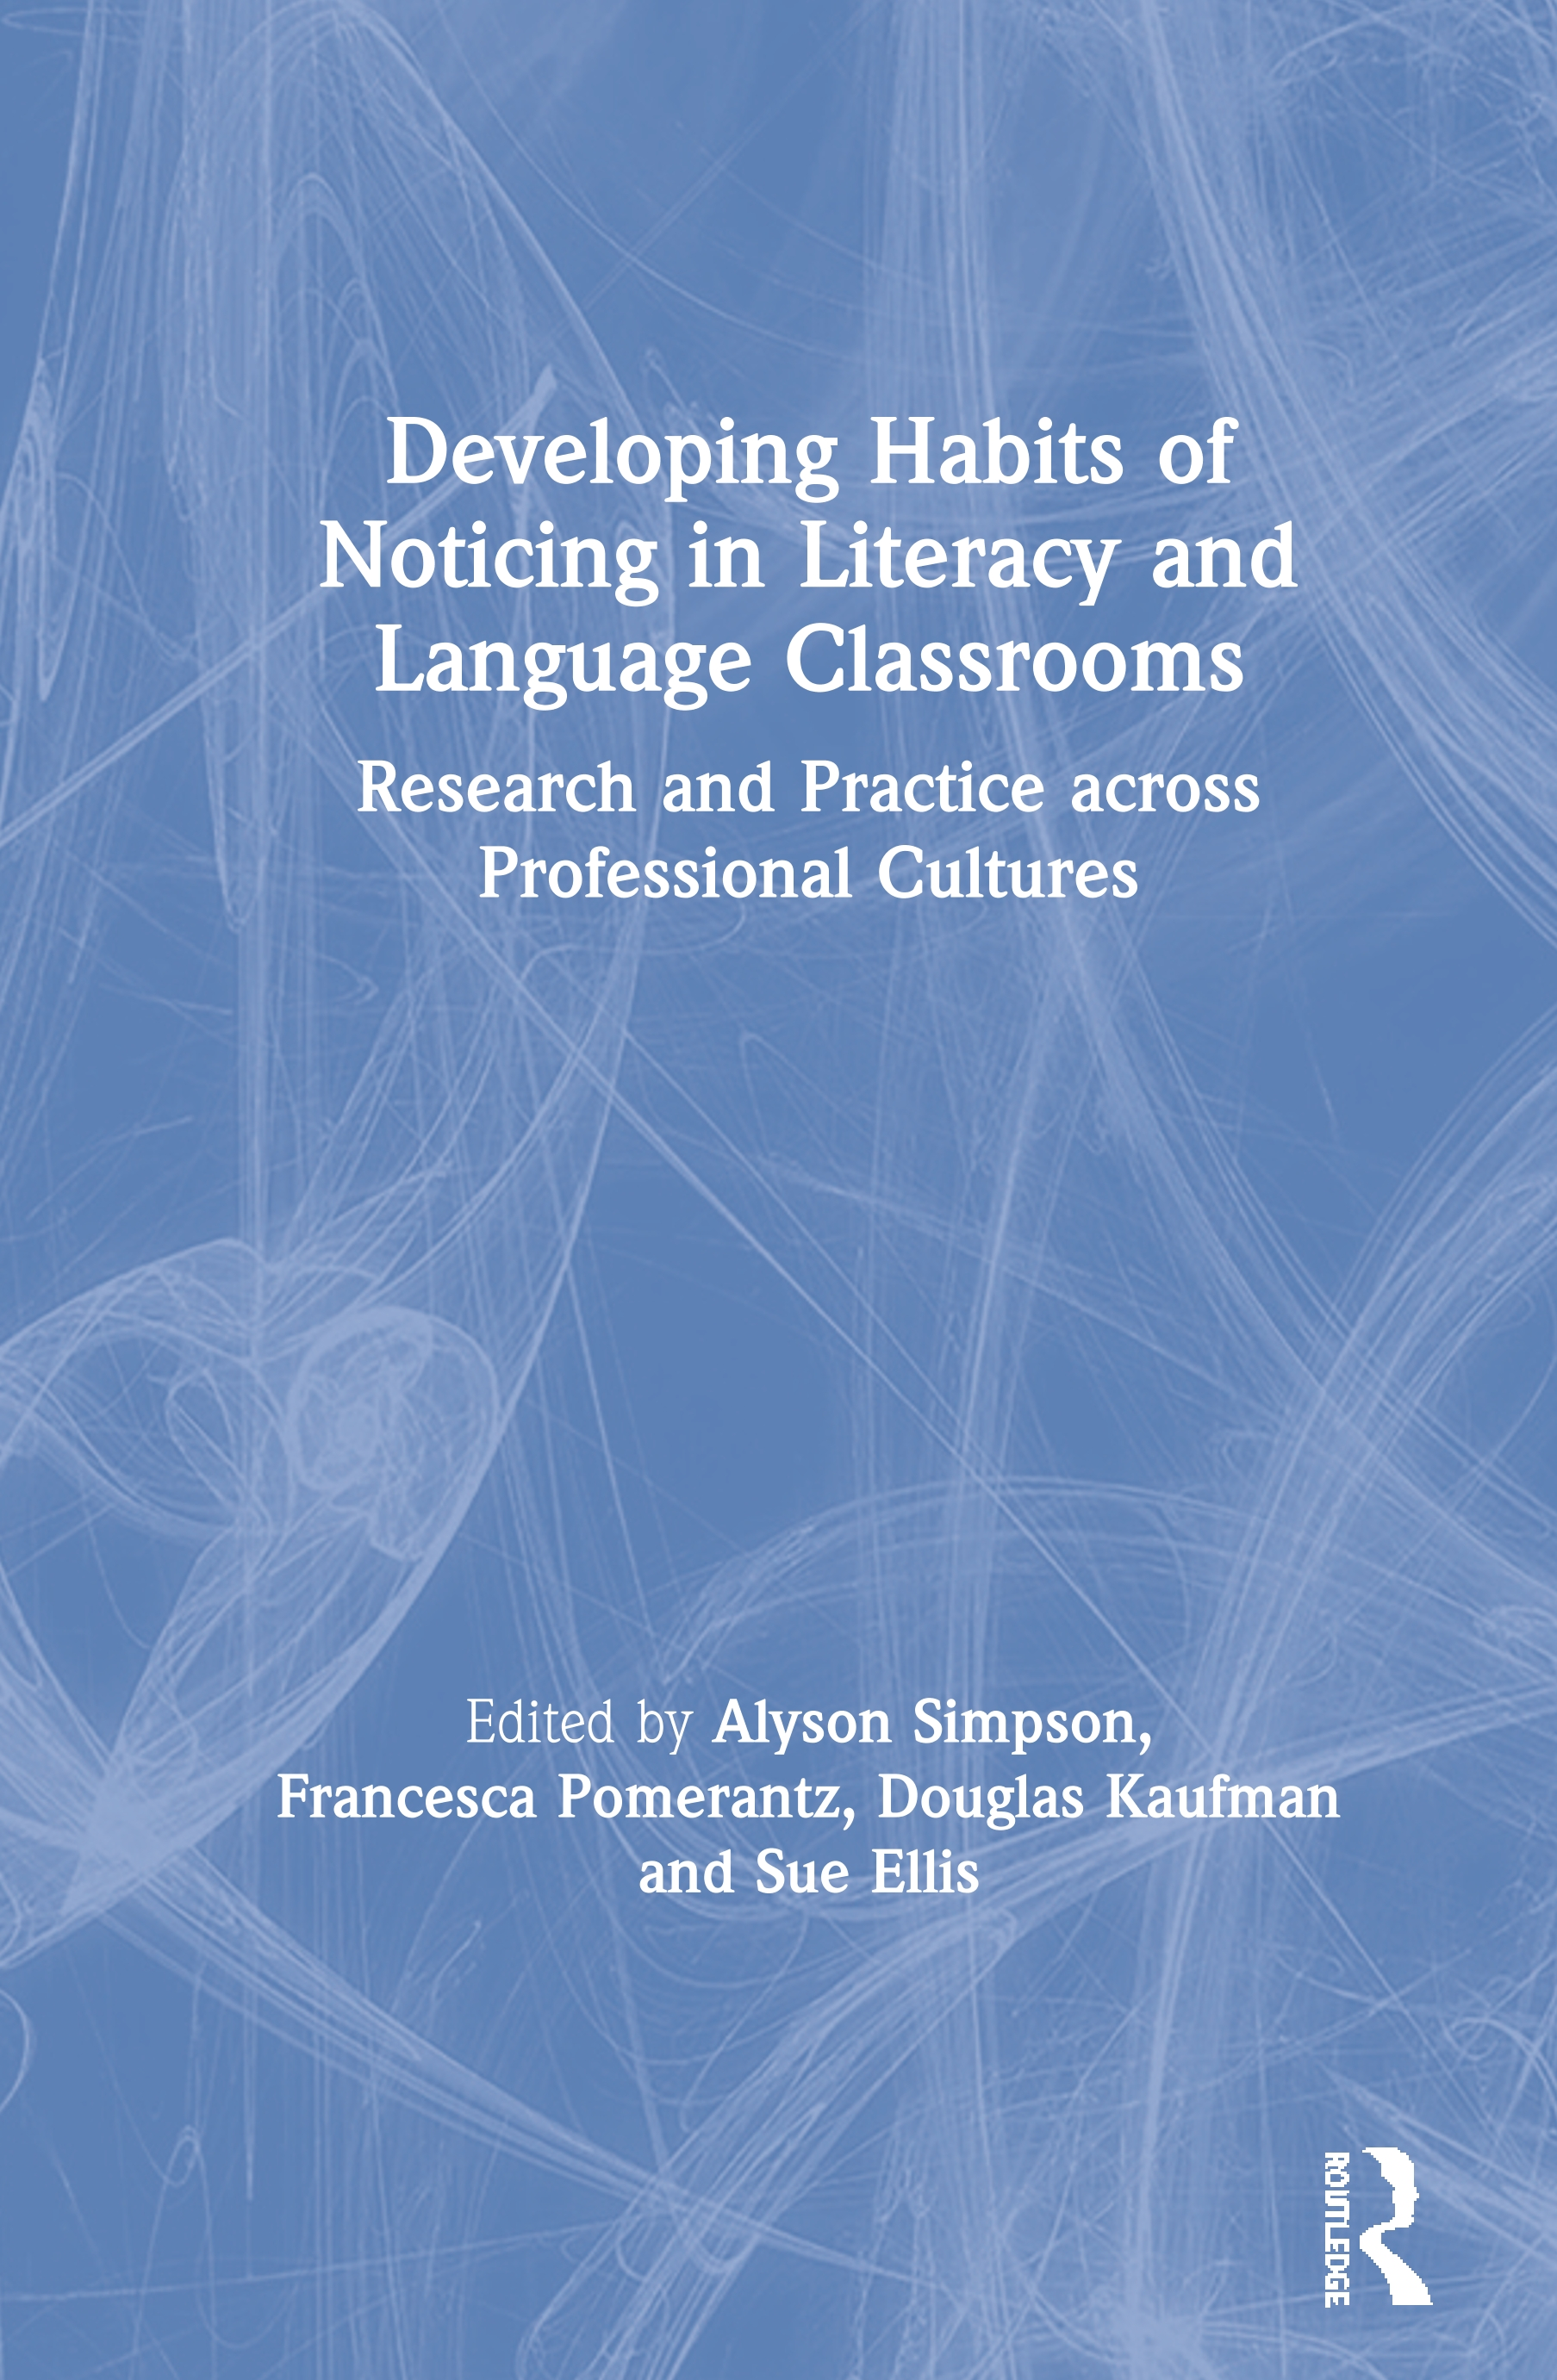 Developing Habits of Noticing in Literacy and Language Classrooms: Research and Practice across Professional Cultures book cover